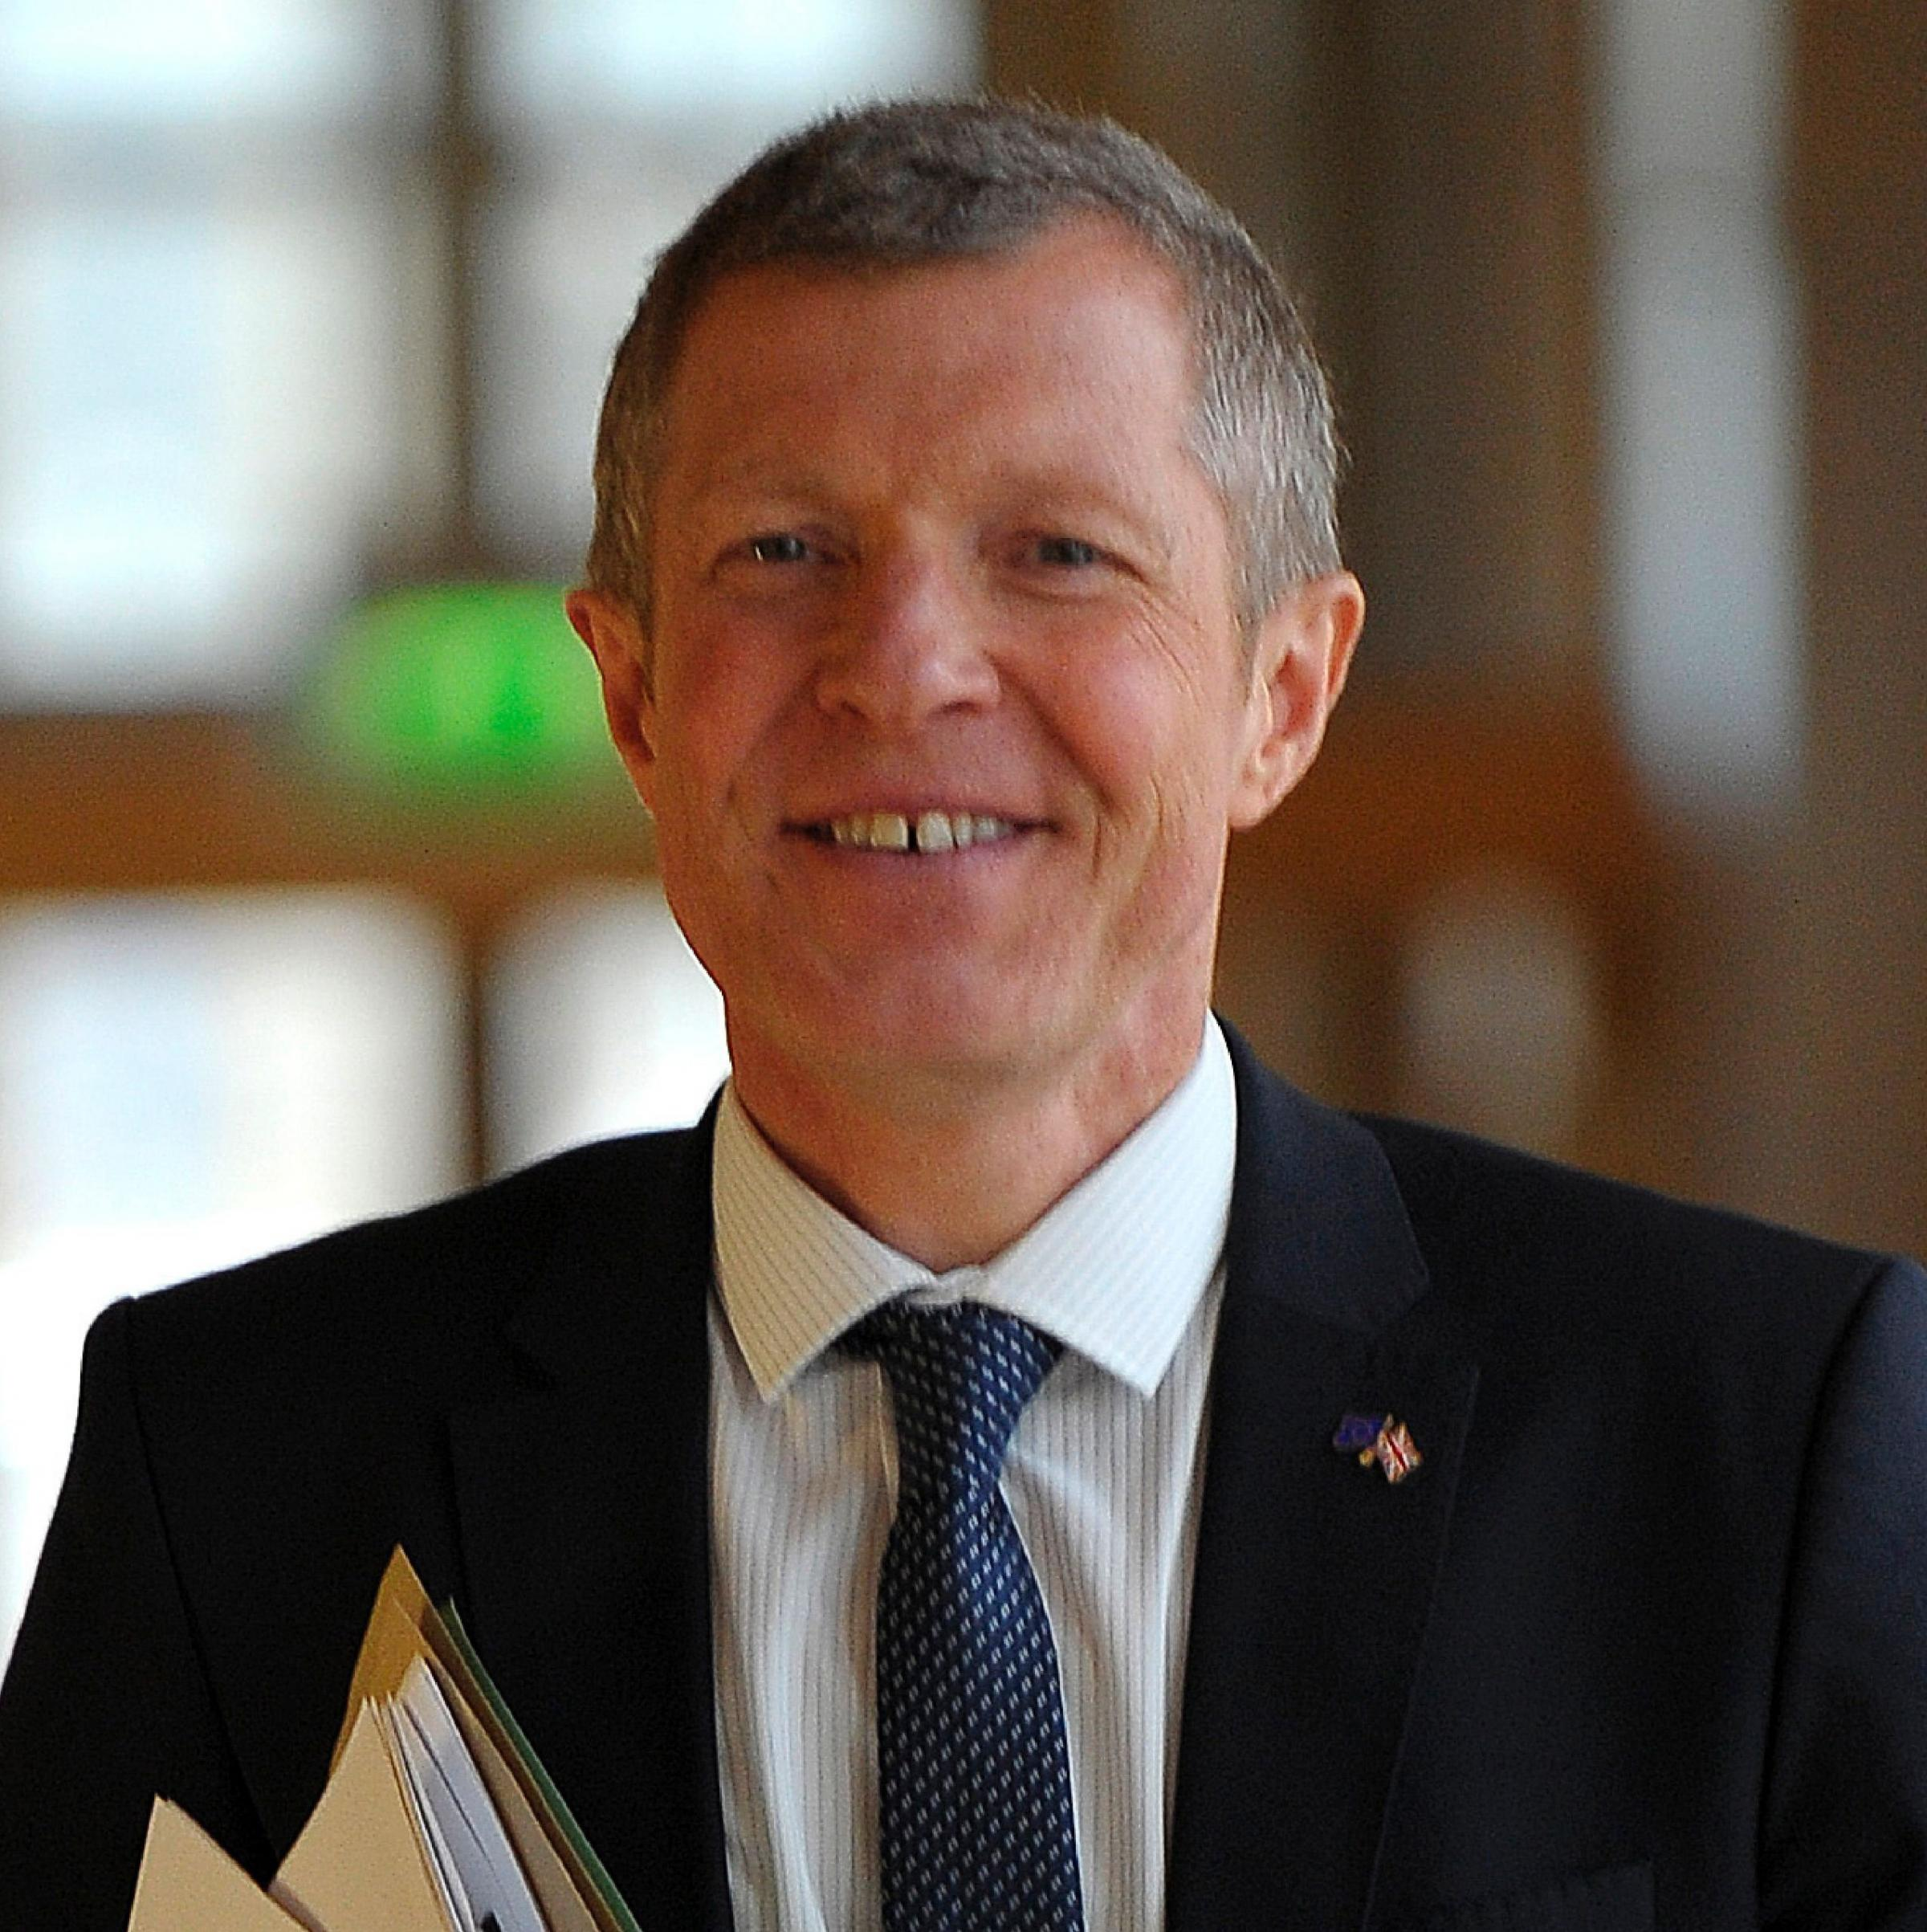 Willie Rennie suggests senior officers from England should be drafted in to assist Police Scotland